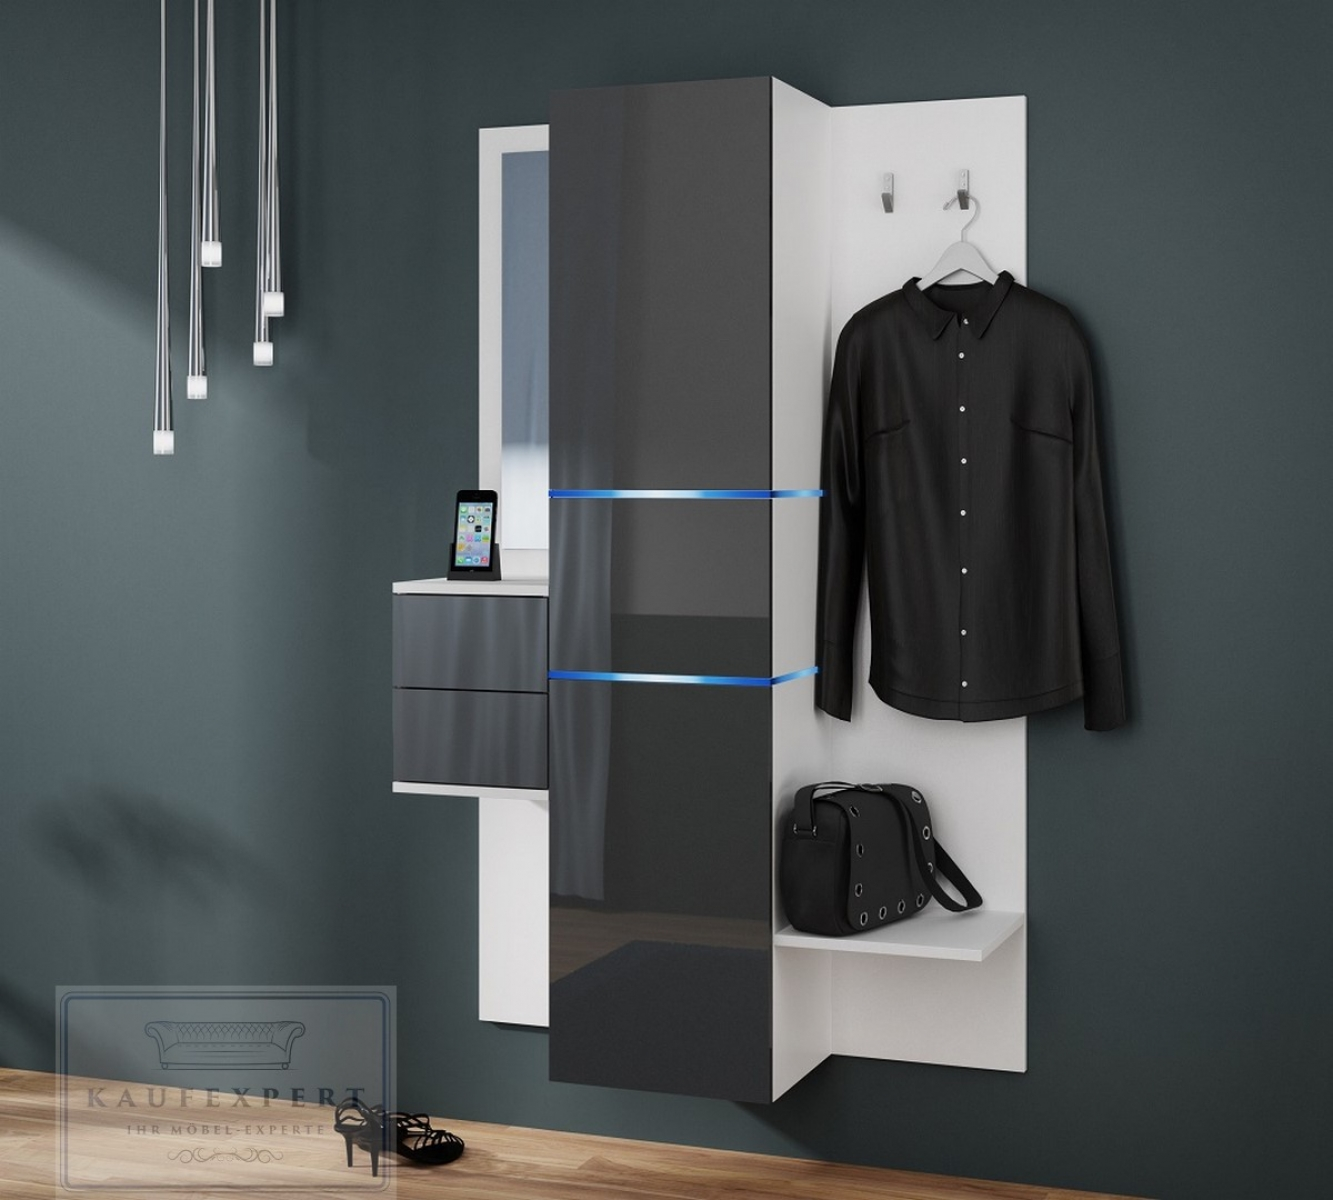 kaufexpert garderobe camino grau hochglanz wei mit. Black Bedroom Furniture Sets. Home Design Ideas